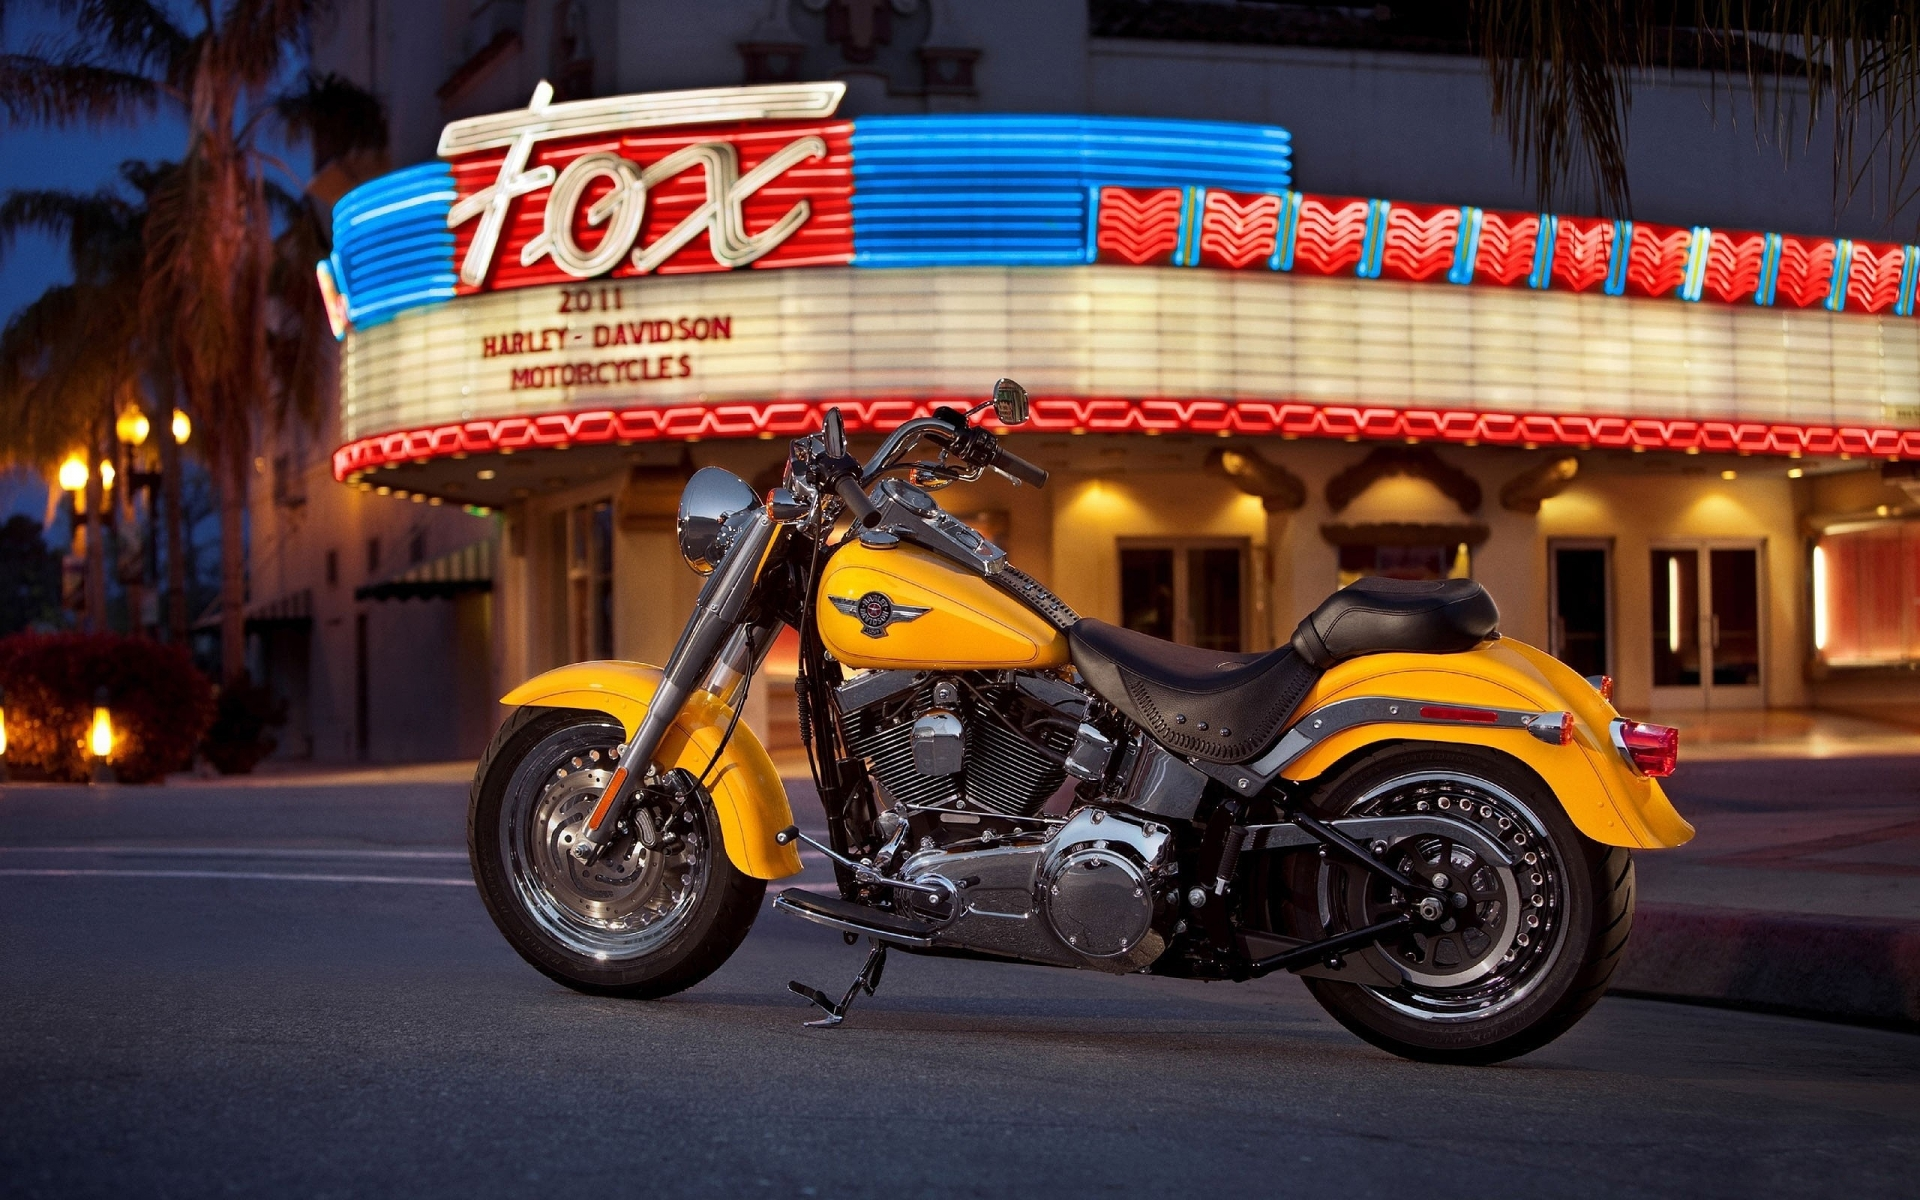 Harley Davidson Fatboy for 1920 x 1200 widescreen resolution